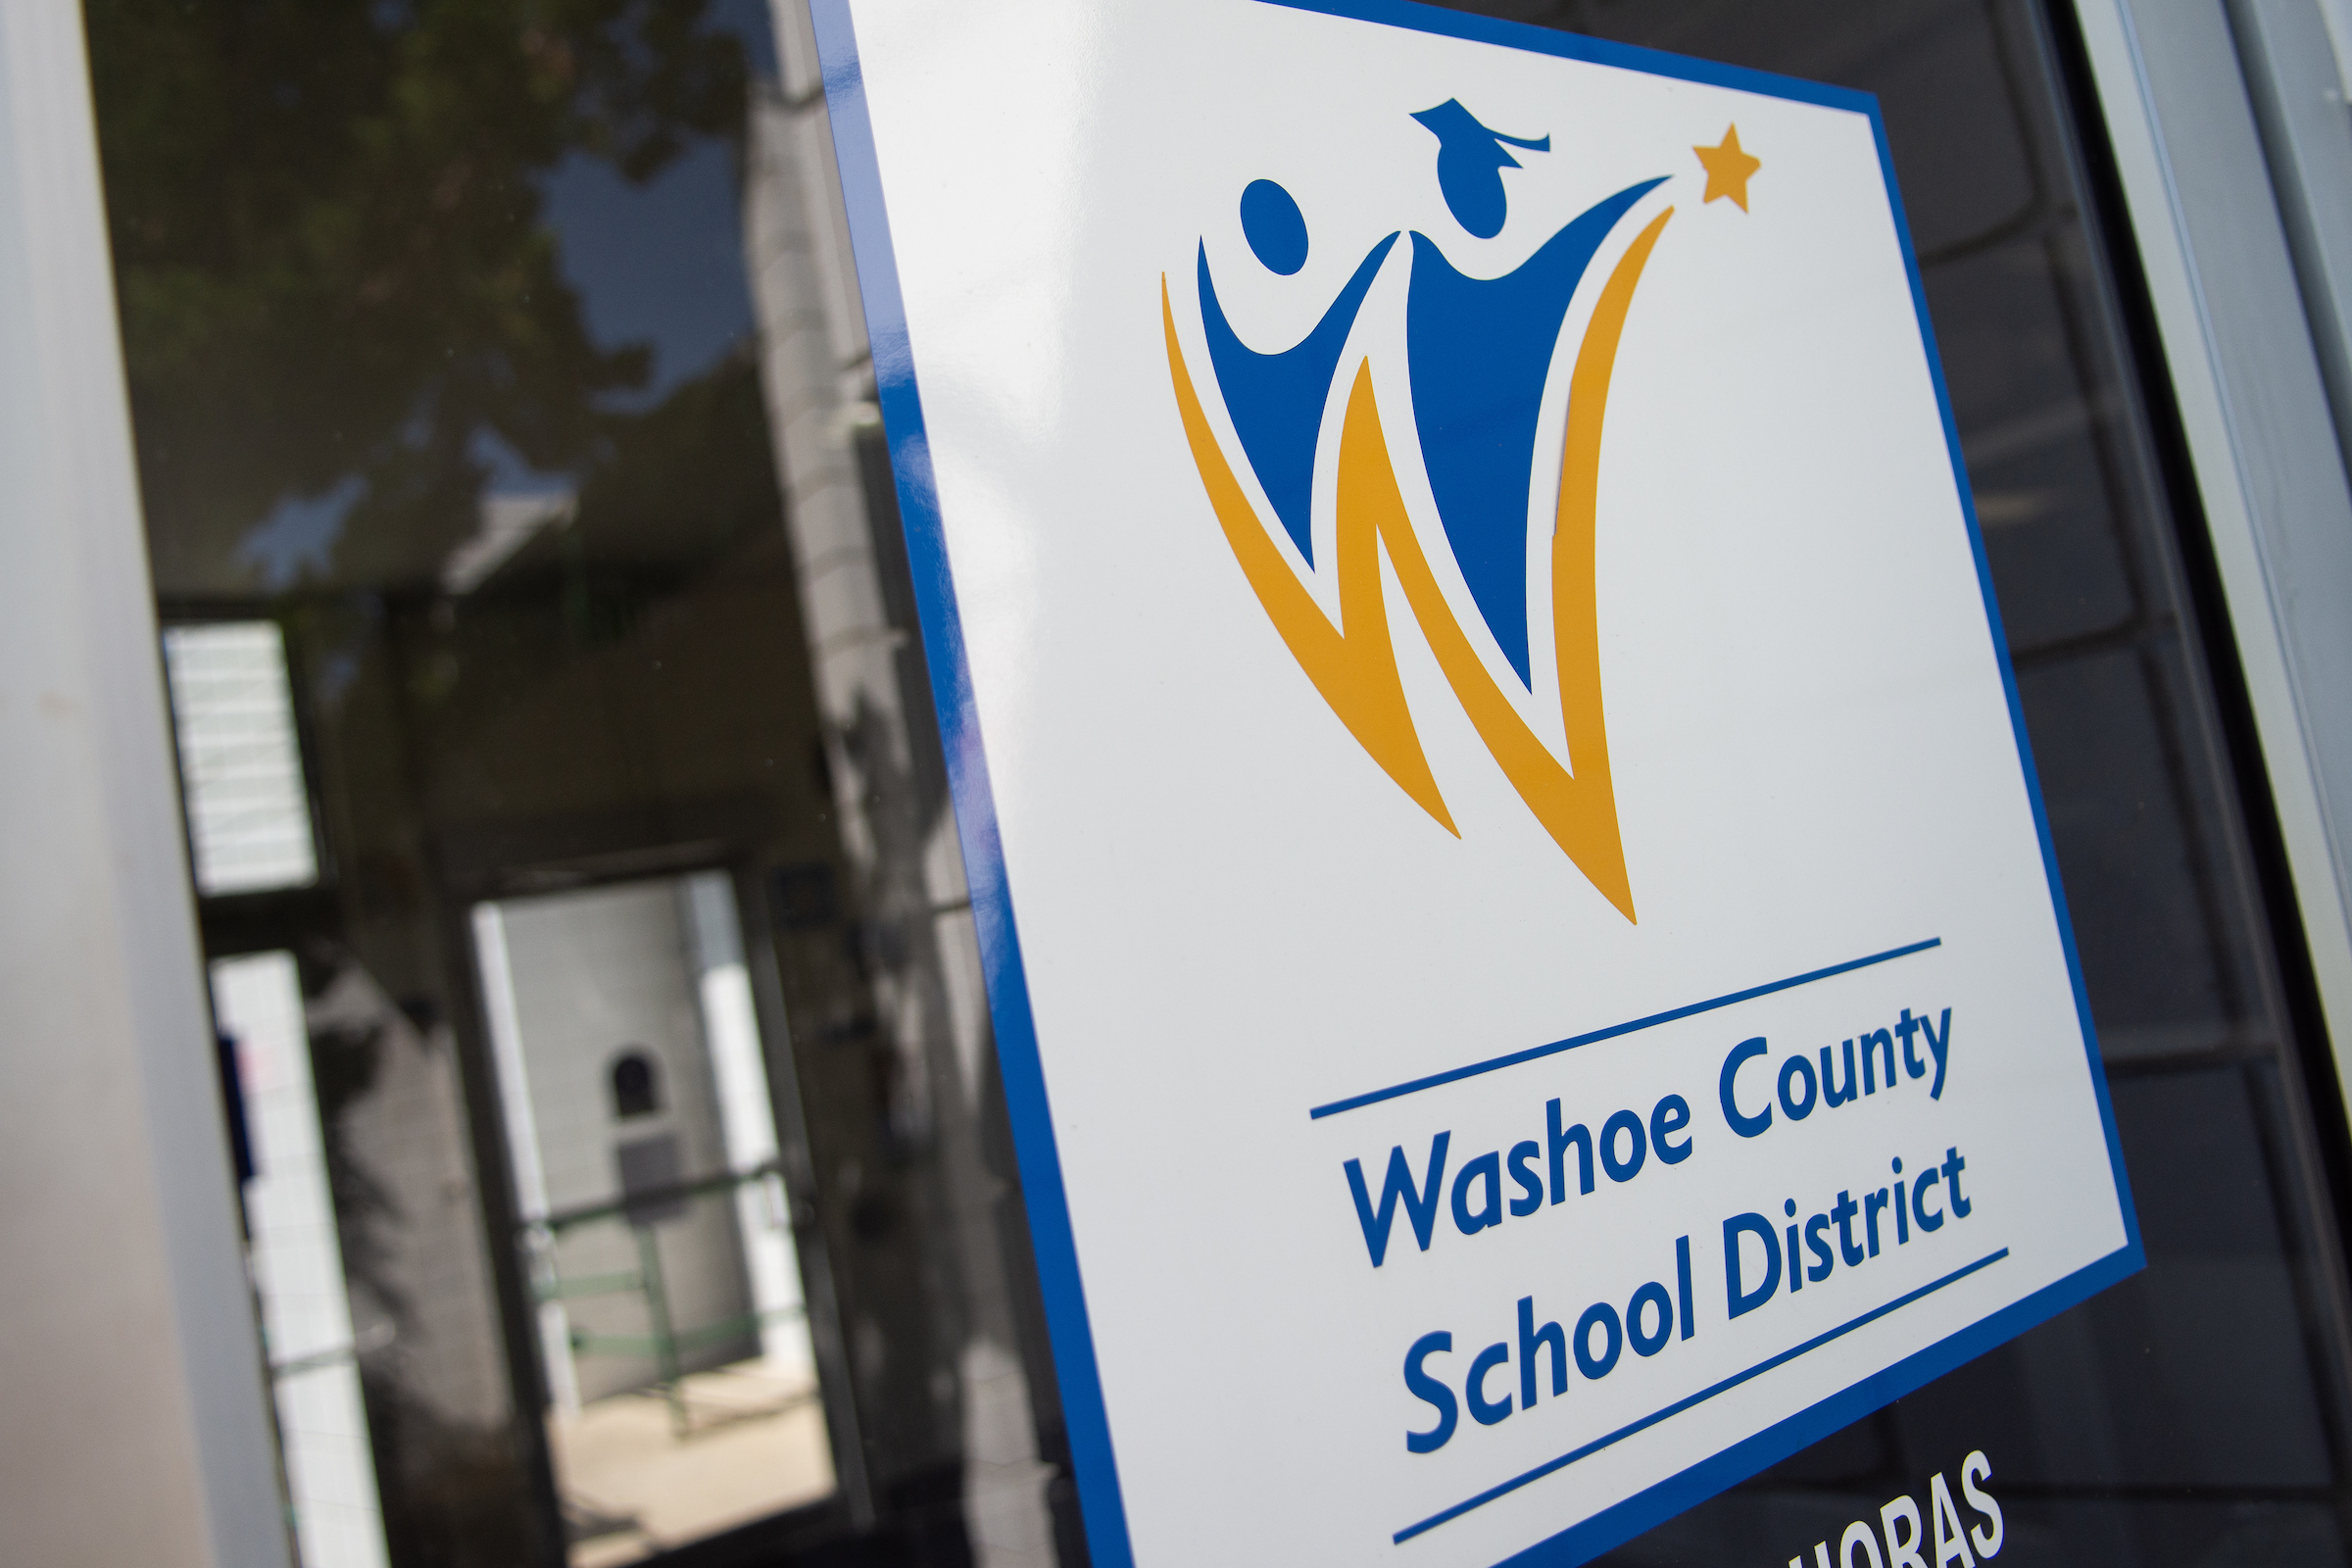 The Washoe County School District's logo as seen on an office building